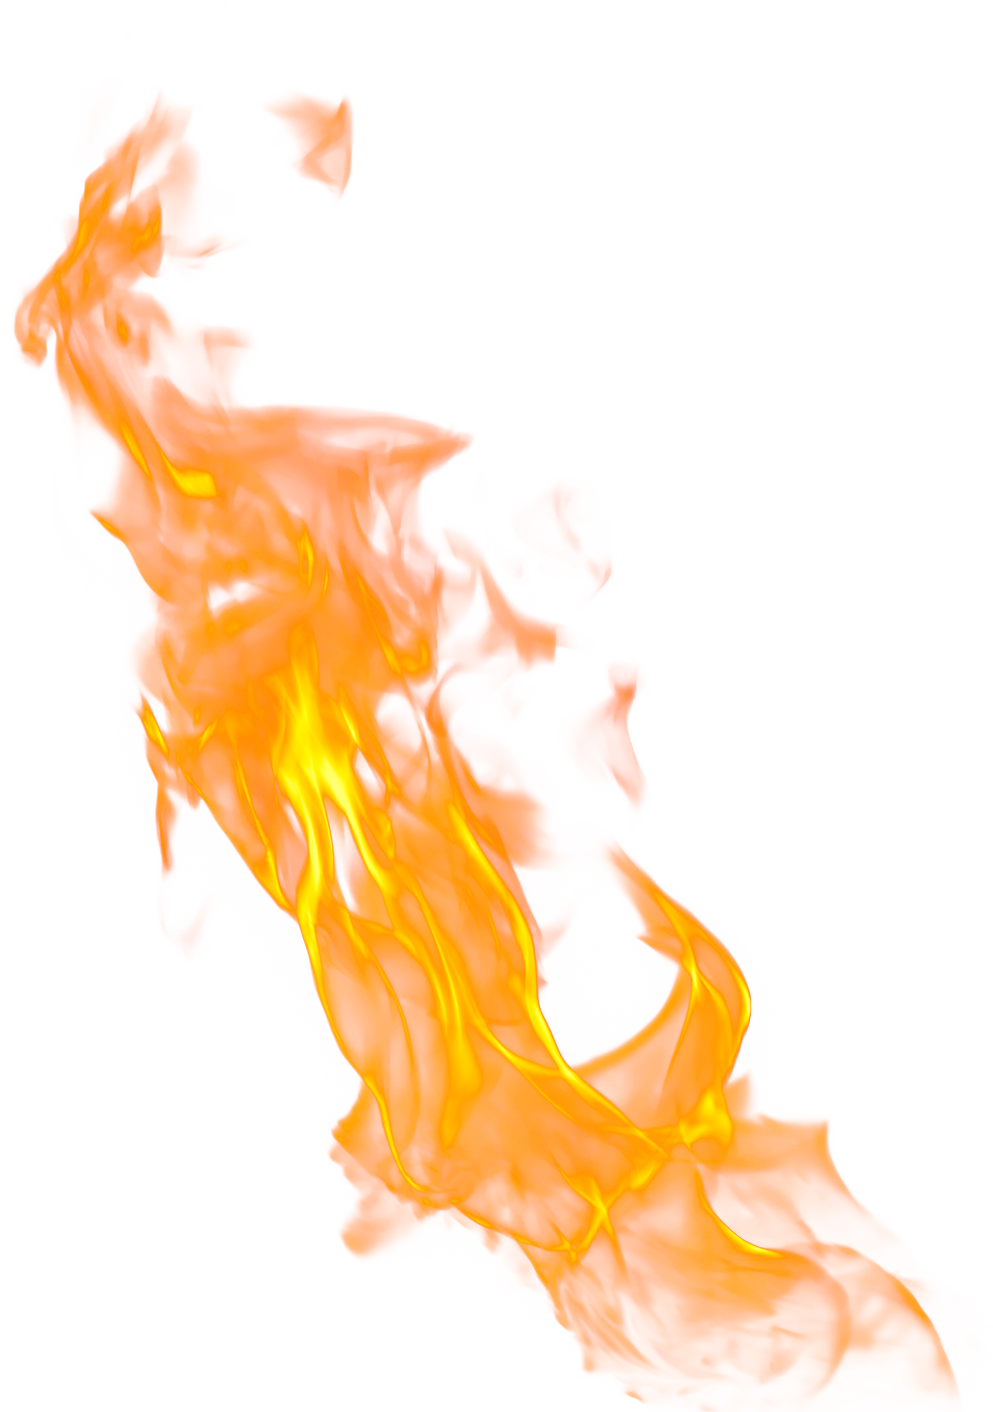 Fire effect png. Flame image purepng free